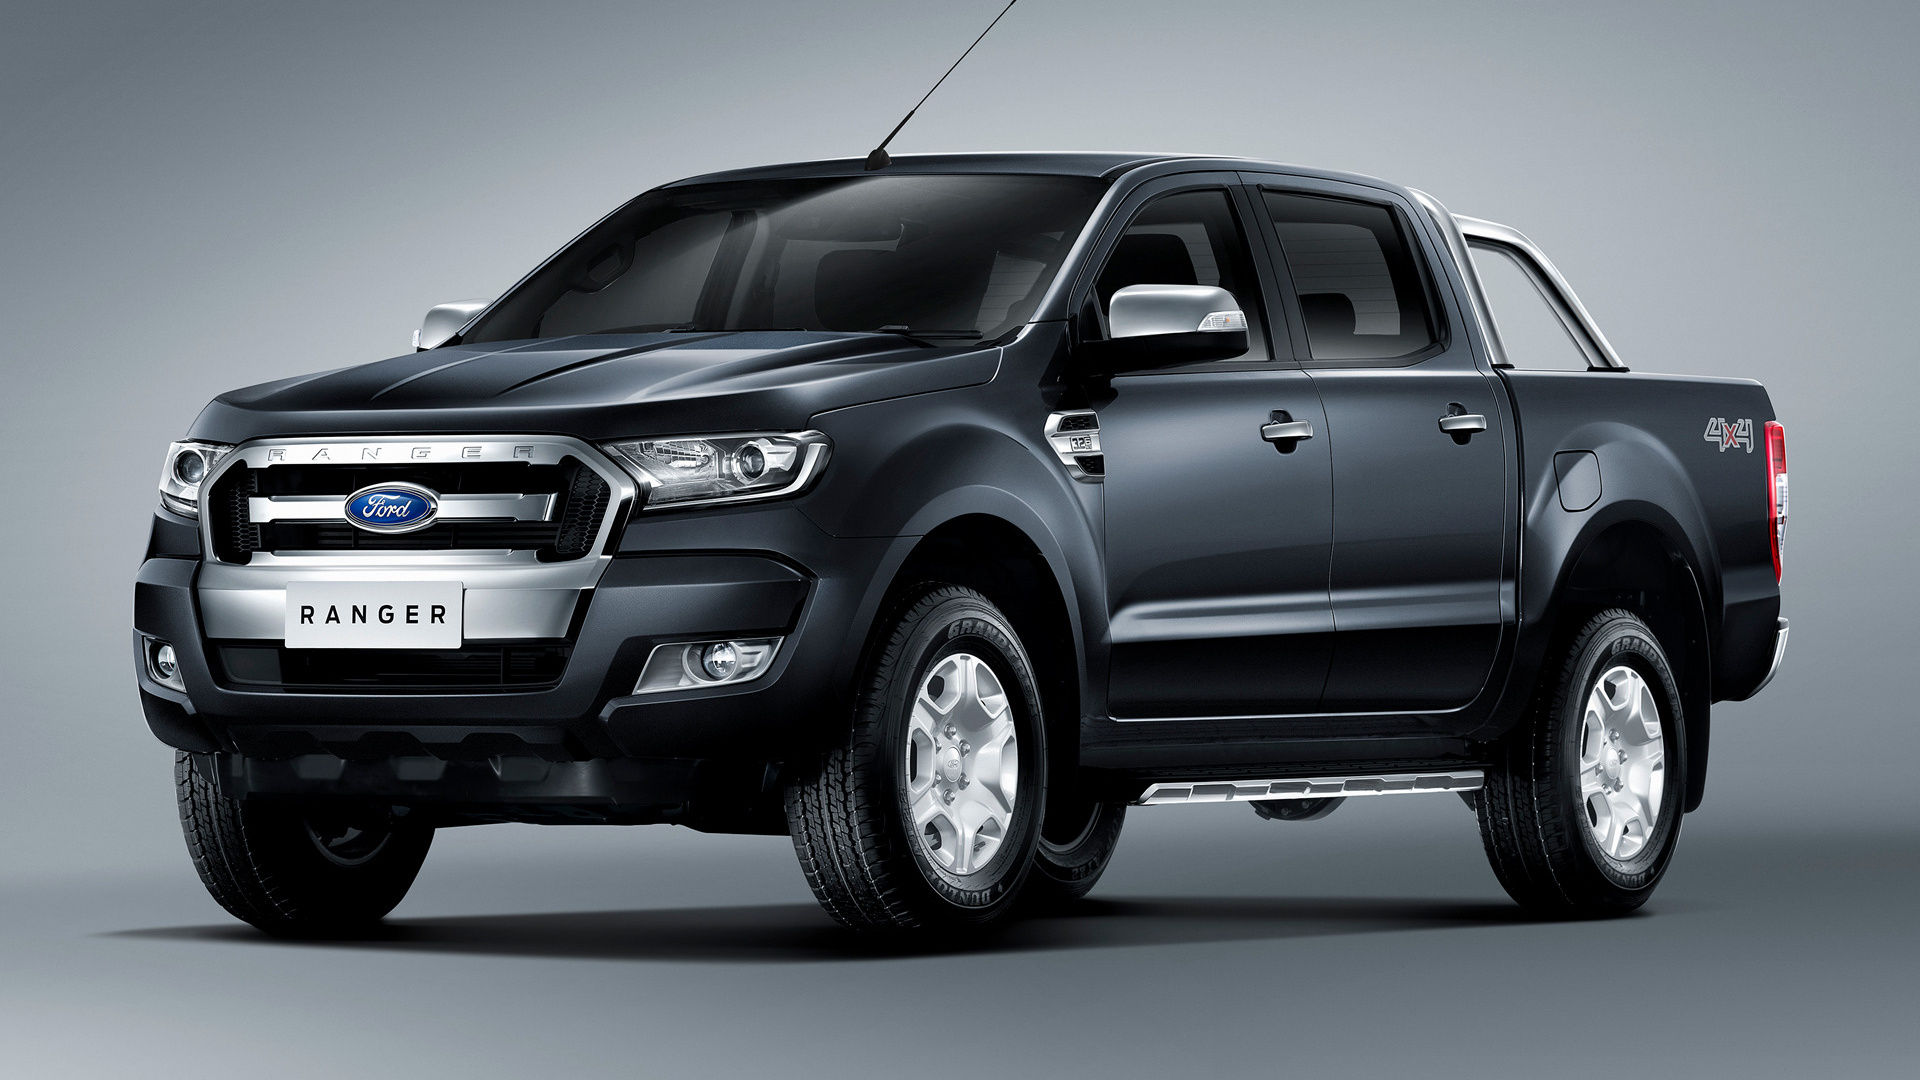 Ford Ranger Double Cab Xlt 2015 Th Wallpapers And Hd